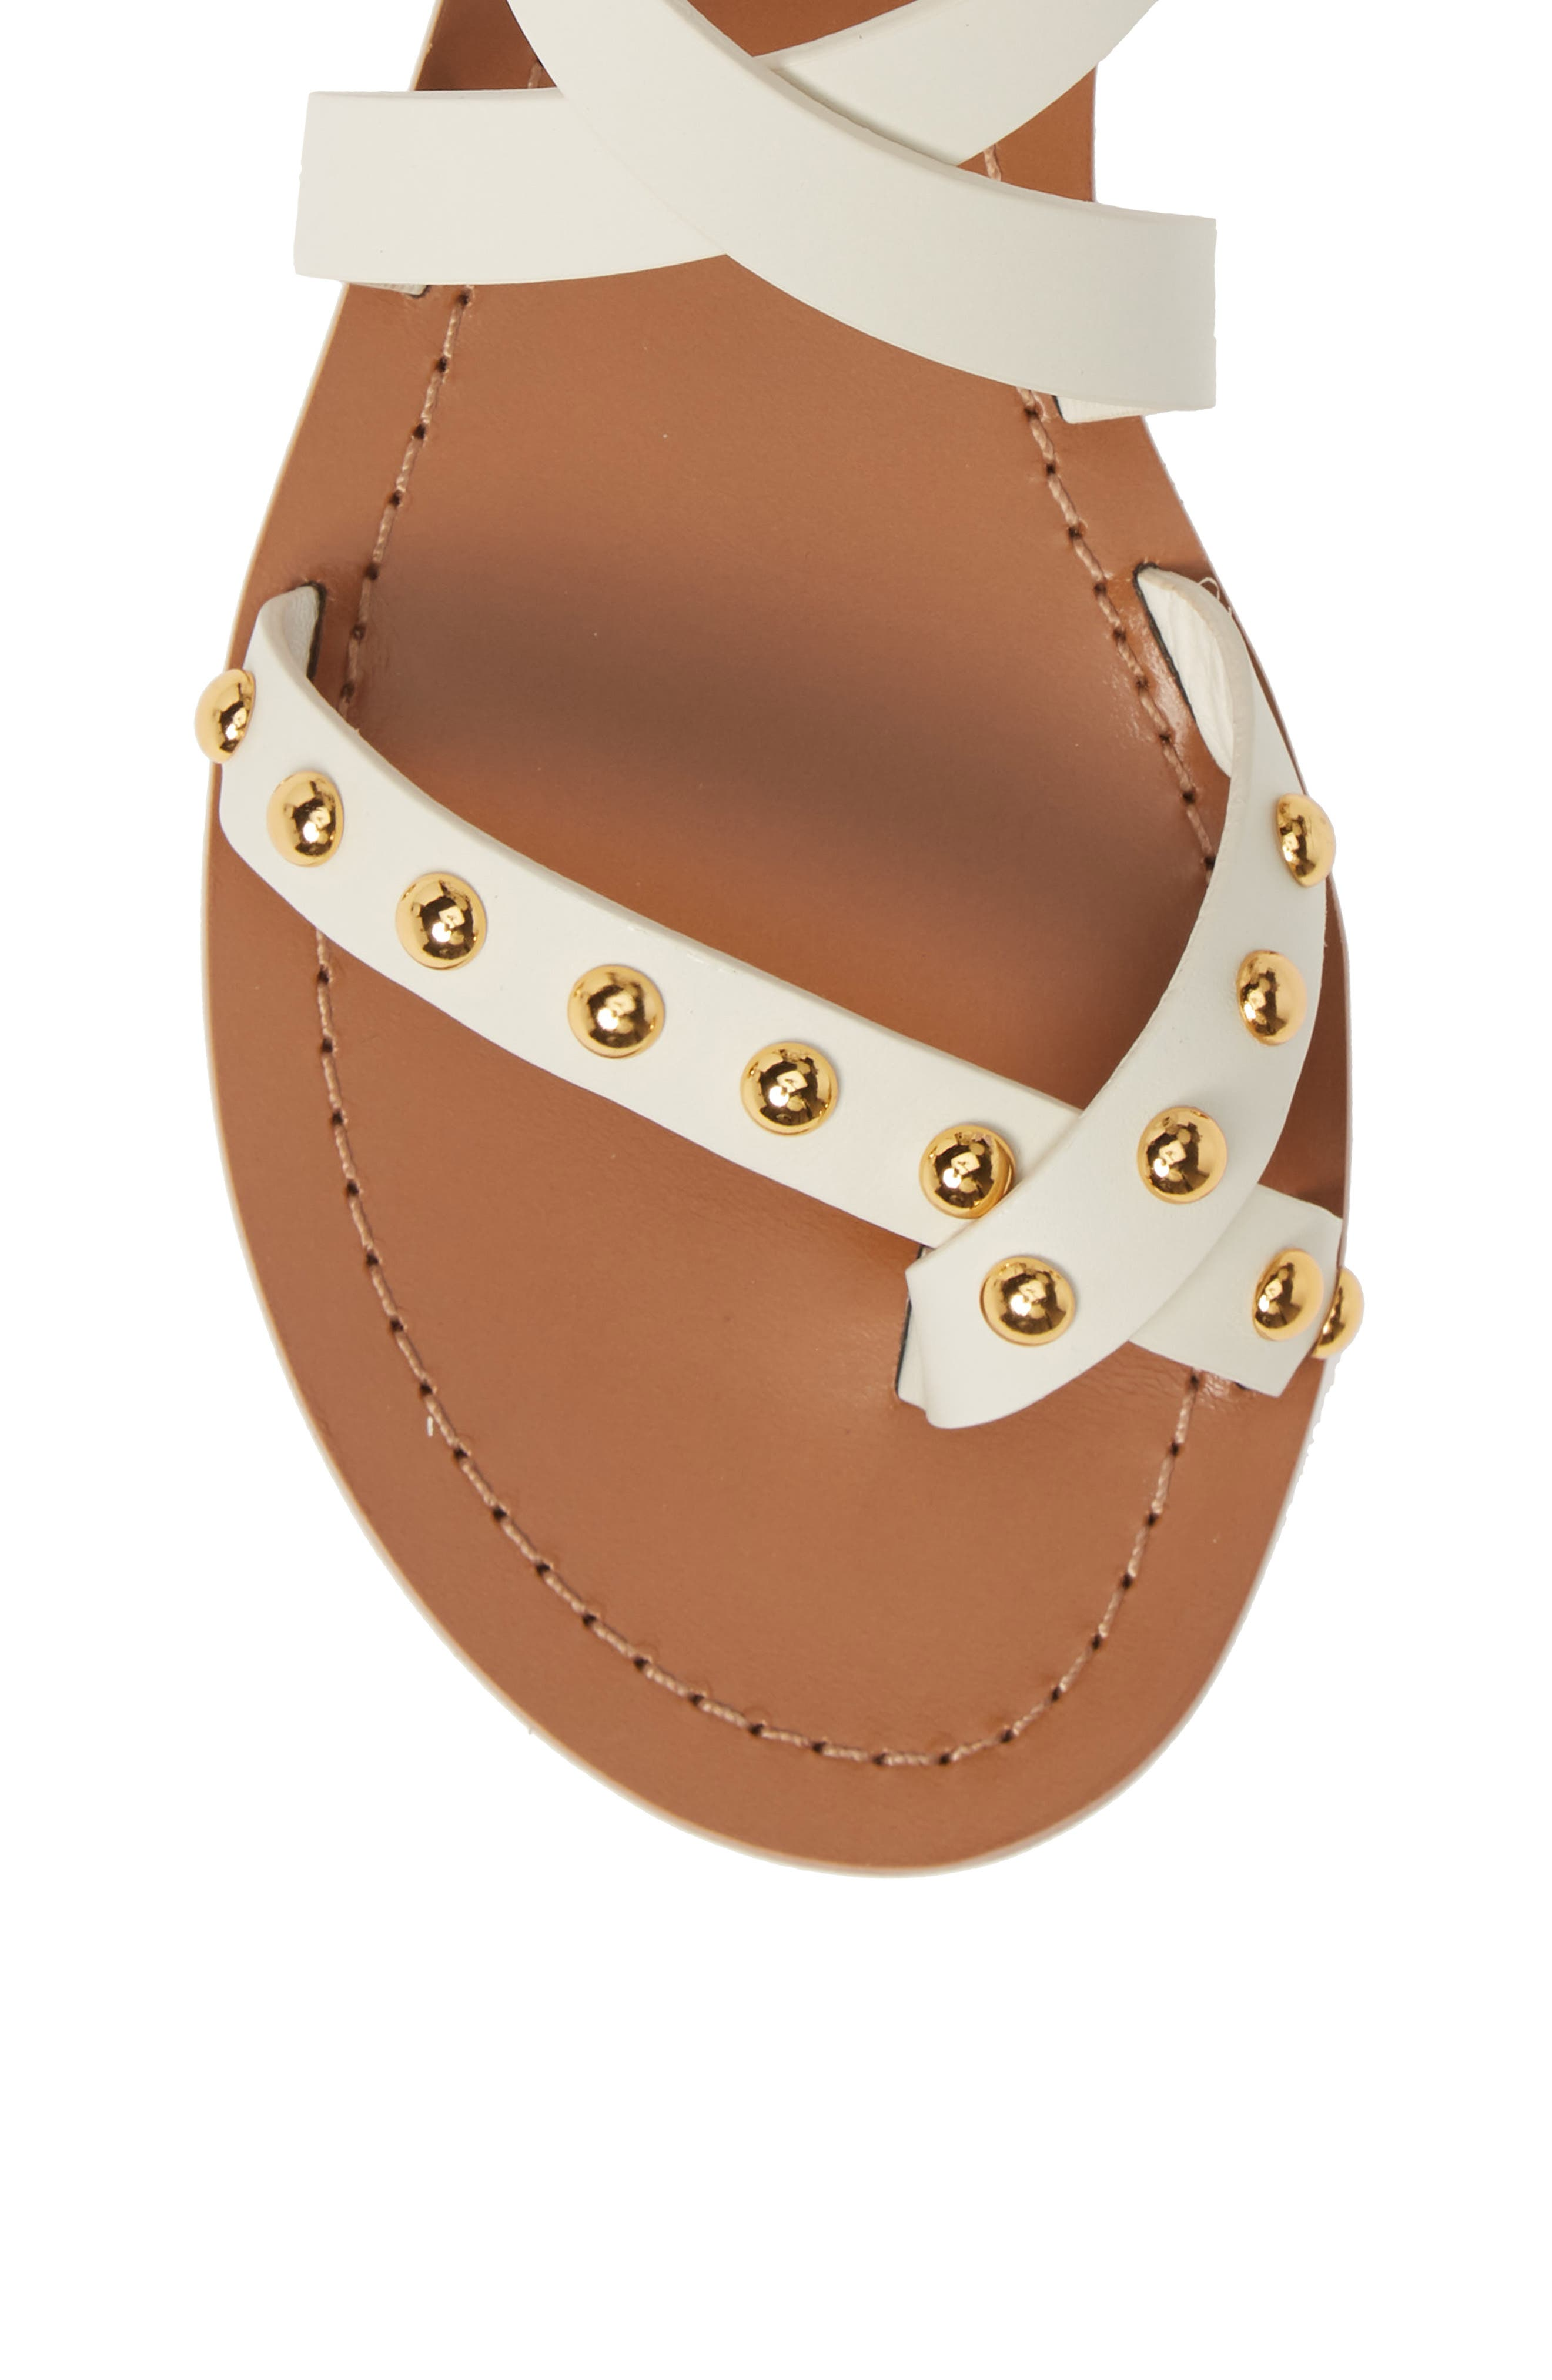 TORY BURCH, Ravello Studded Cage Sandal, Alternate thumbnail 5, color, PERFECT IVORY